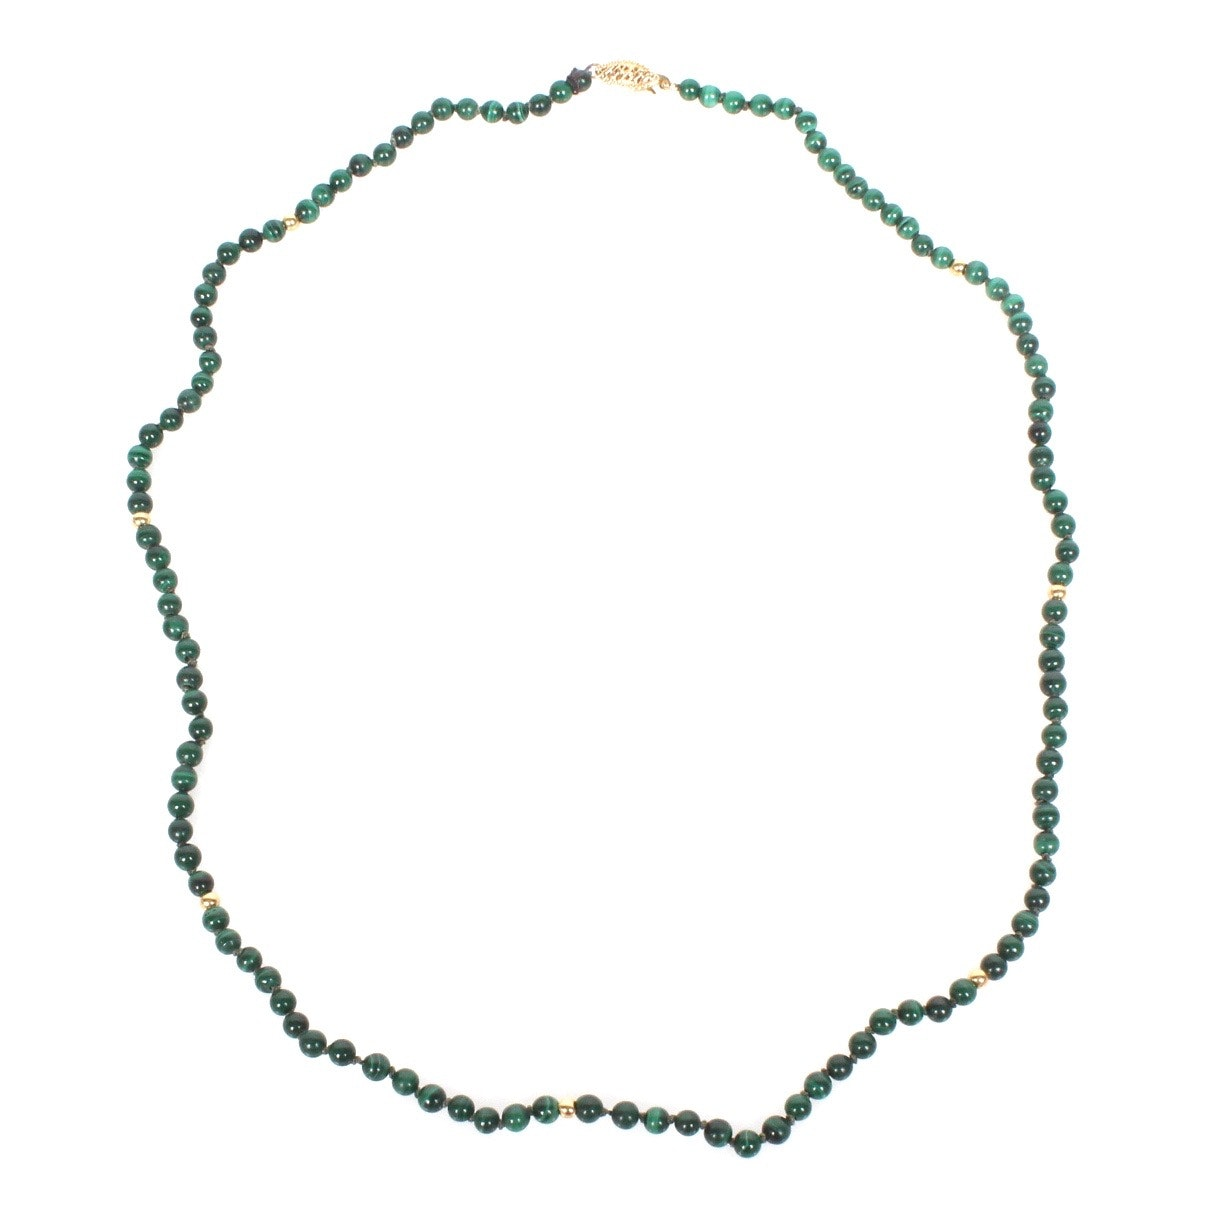 14K Yellow Gold and Natural Malachite Beaded Necklace